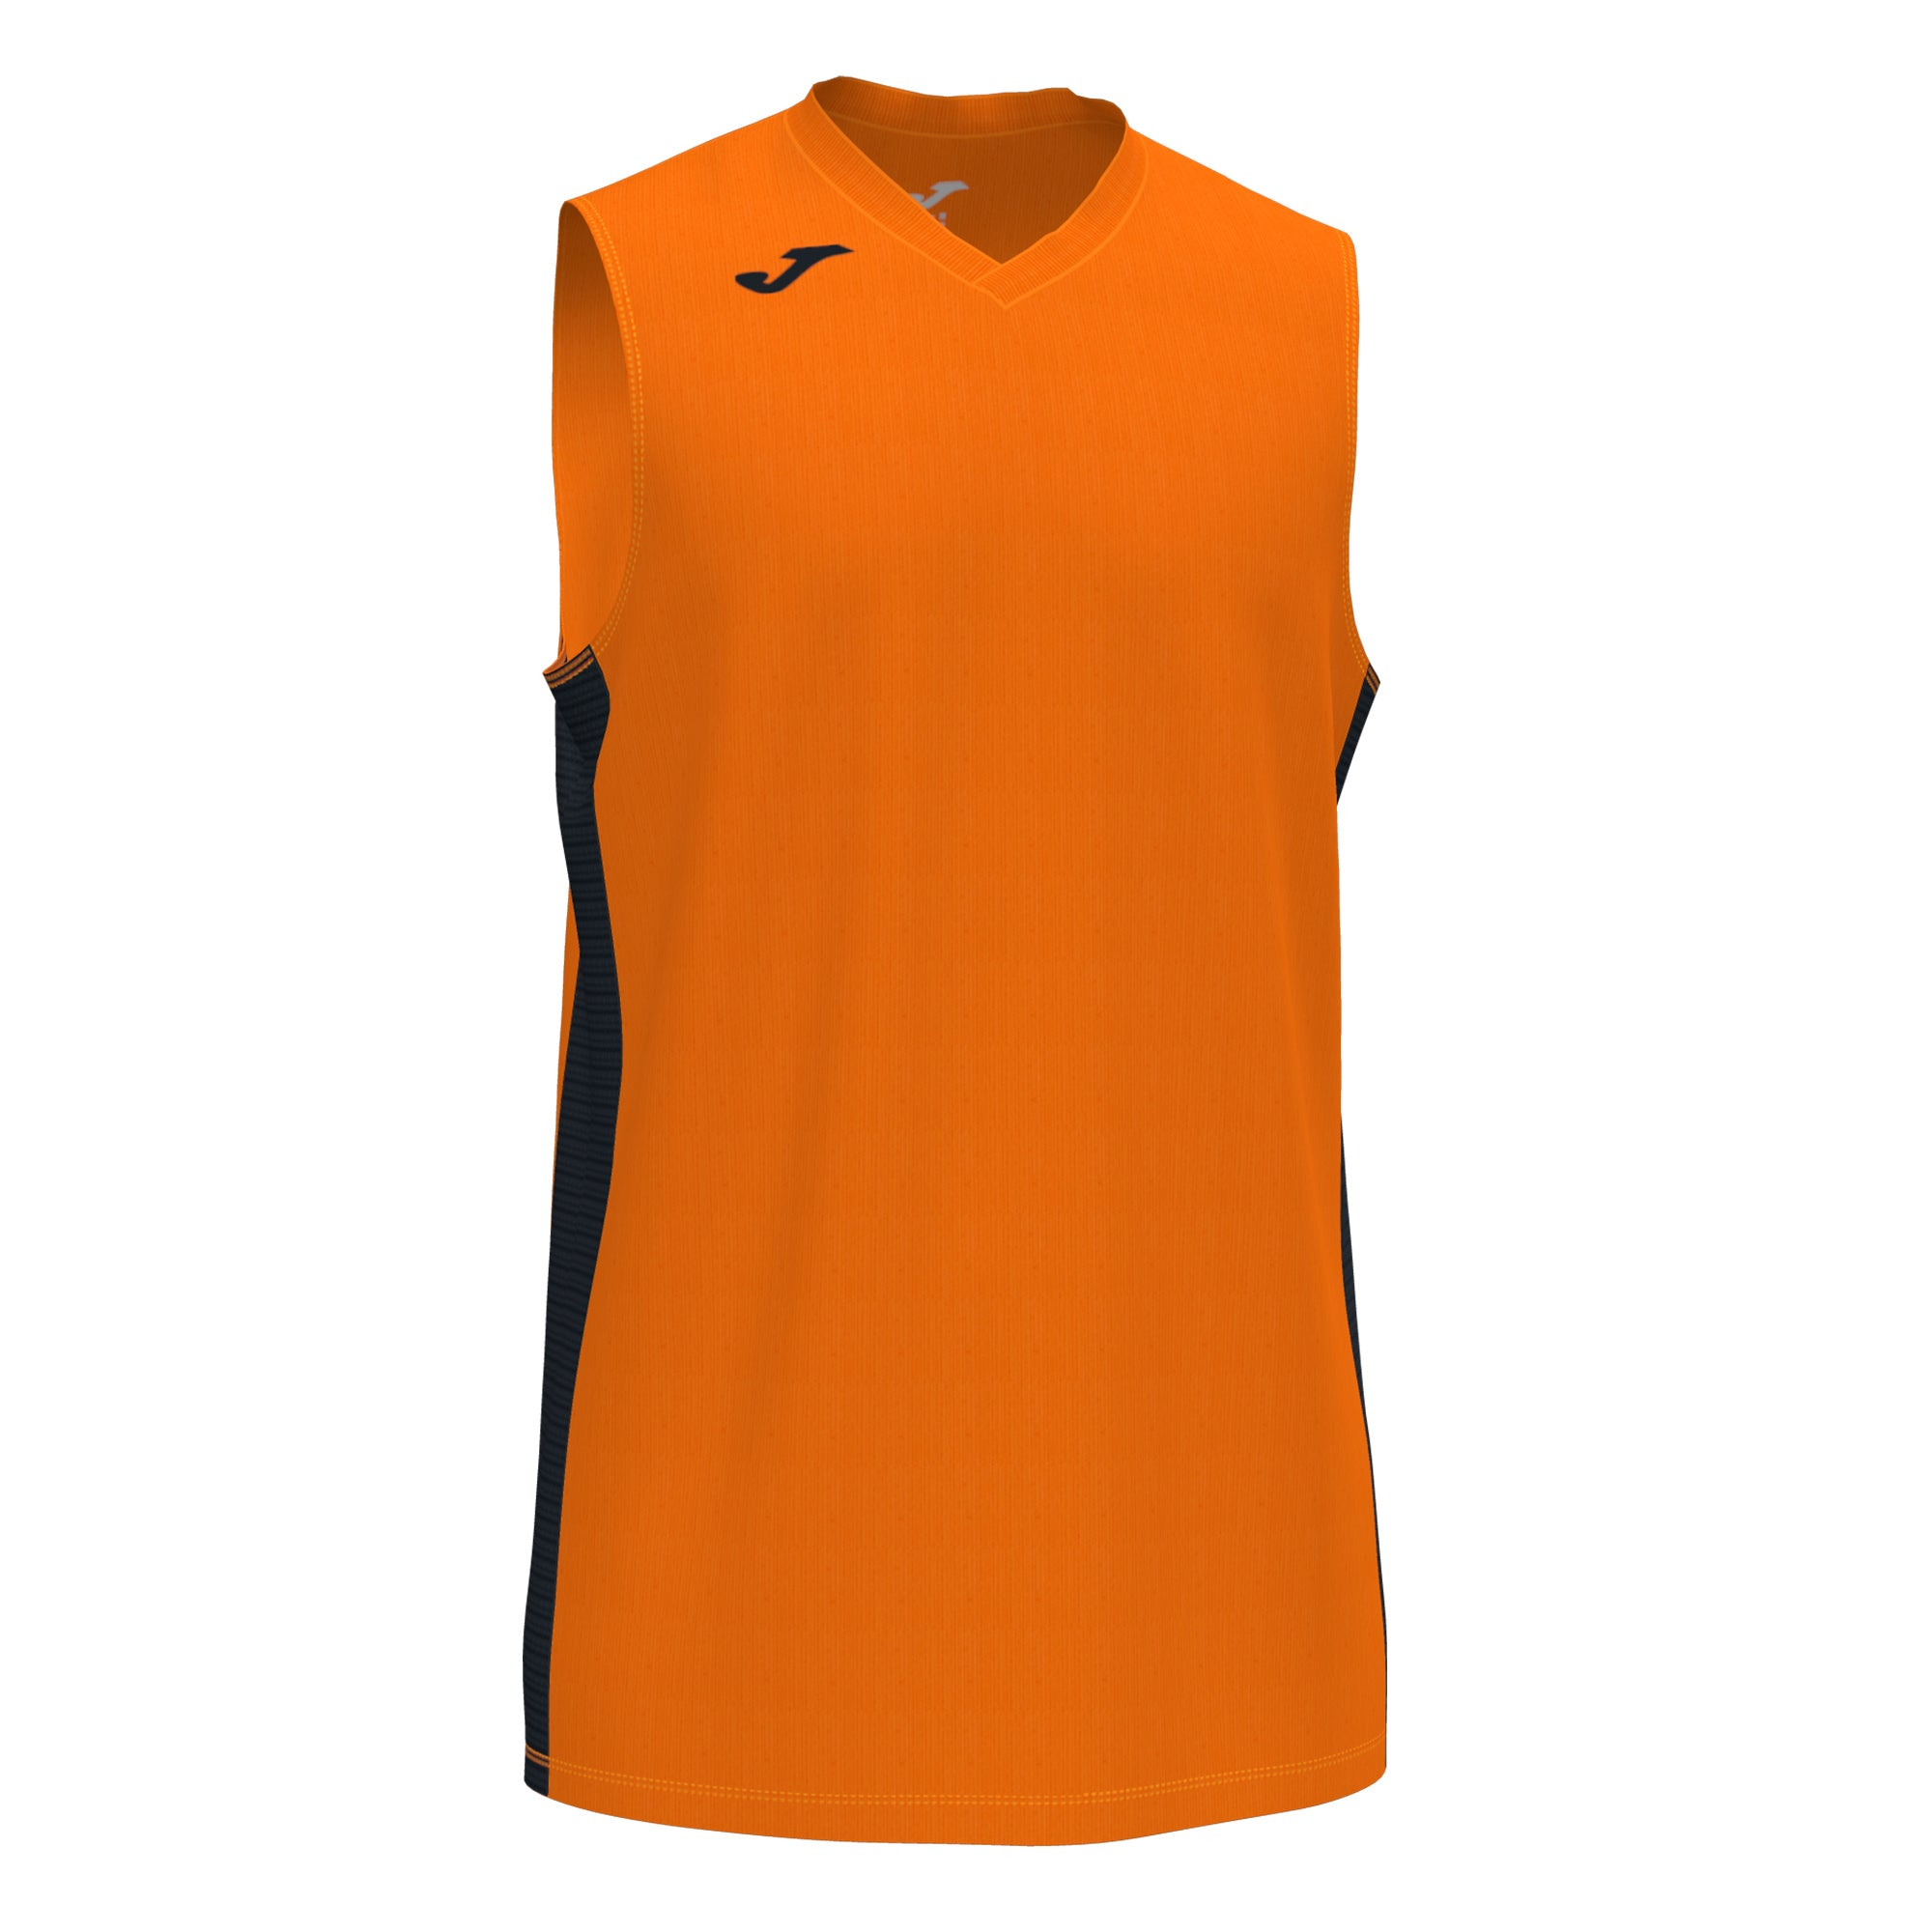 Teamwear - Joma Cancha III Sleeveless - Orange/Black - JO-101573-881